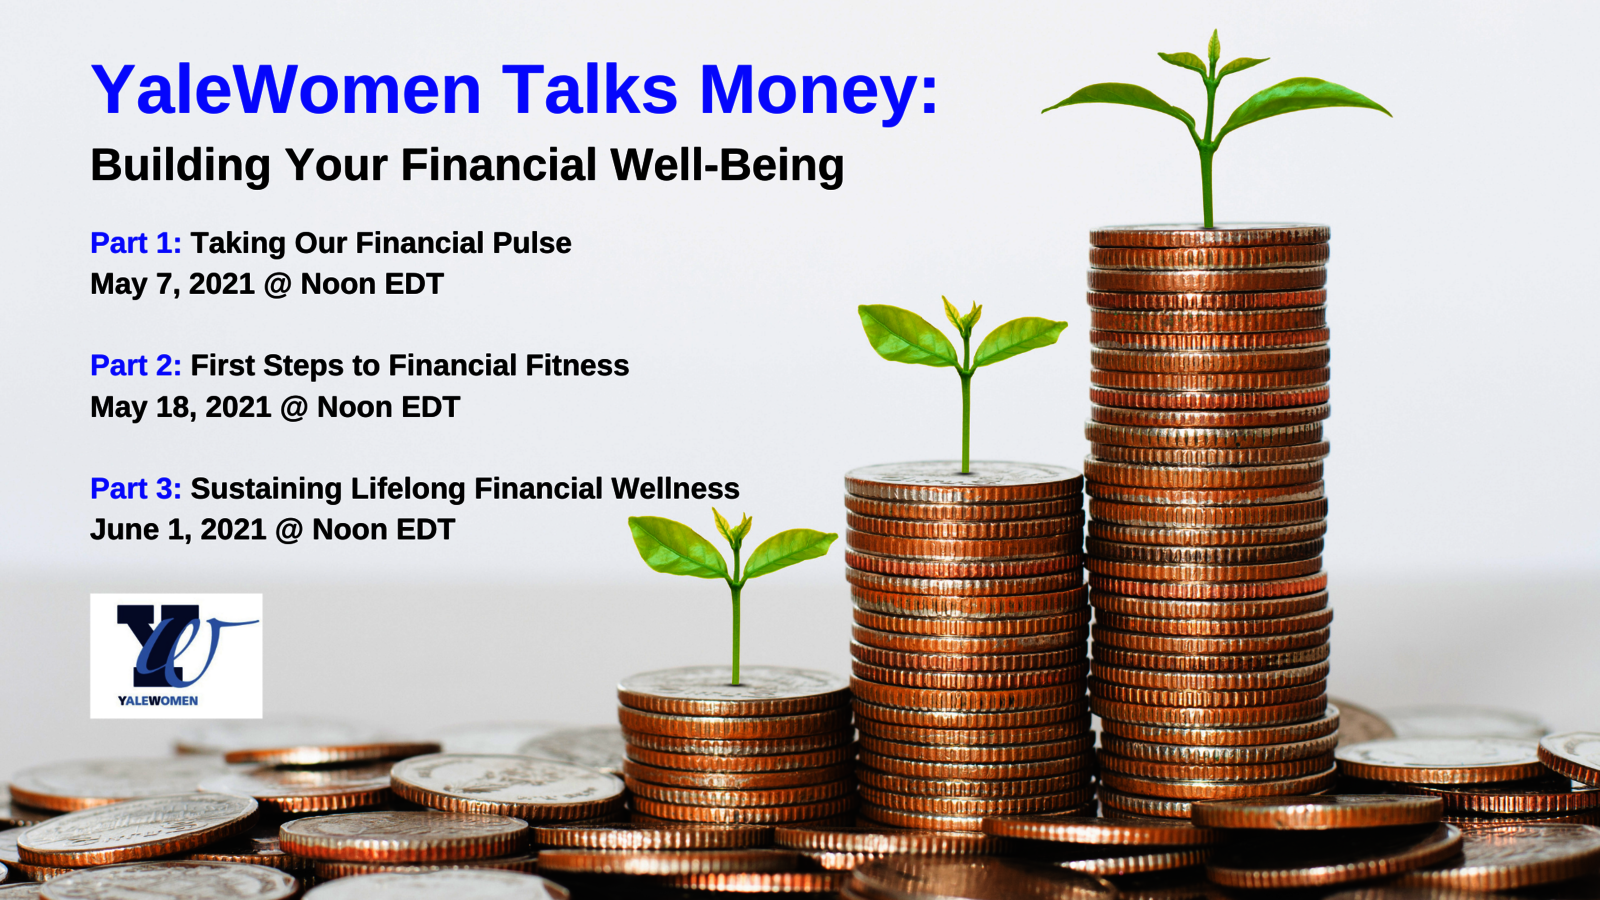 YaleWomen Talks Money_3 event dates and times listed over a stack of coins